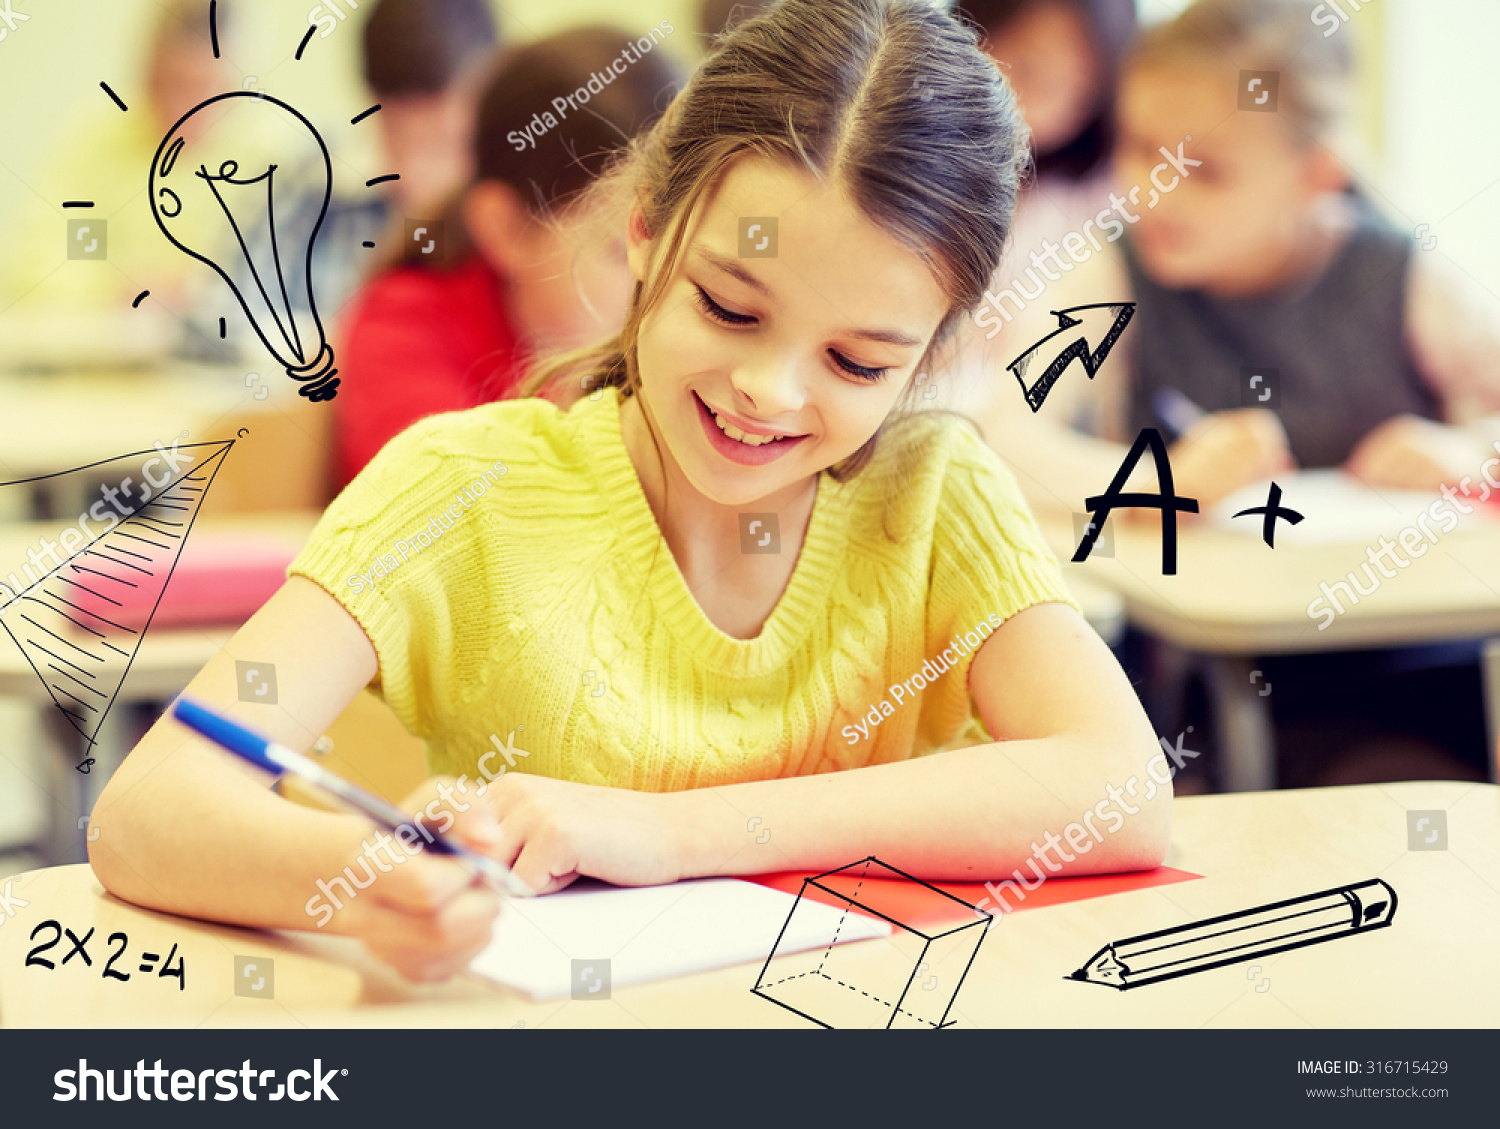 education elementary school learning and people concept group of school kids with notebooks writing test in classroom over doodles